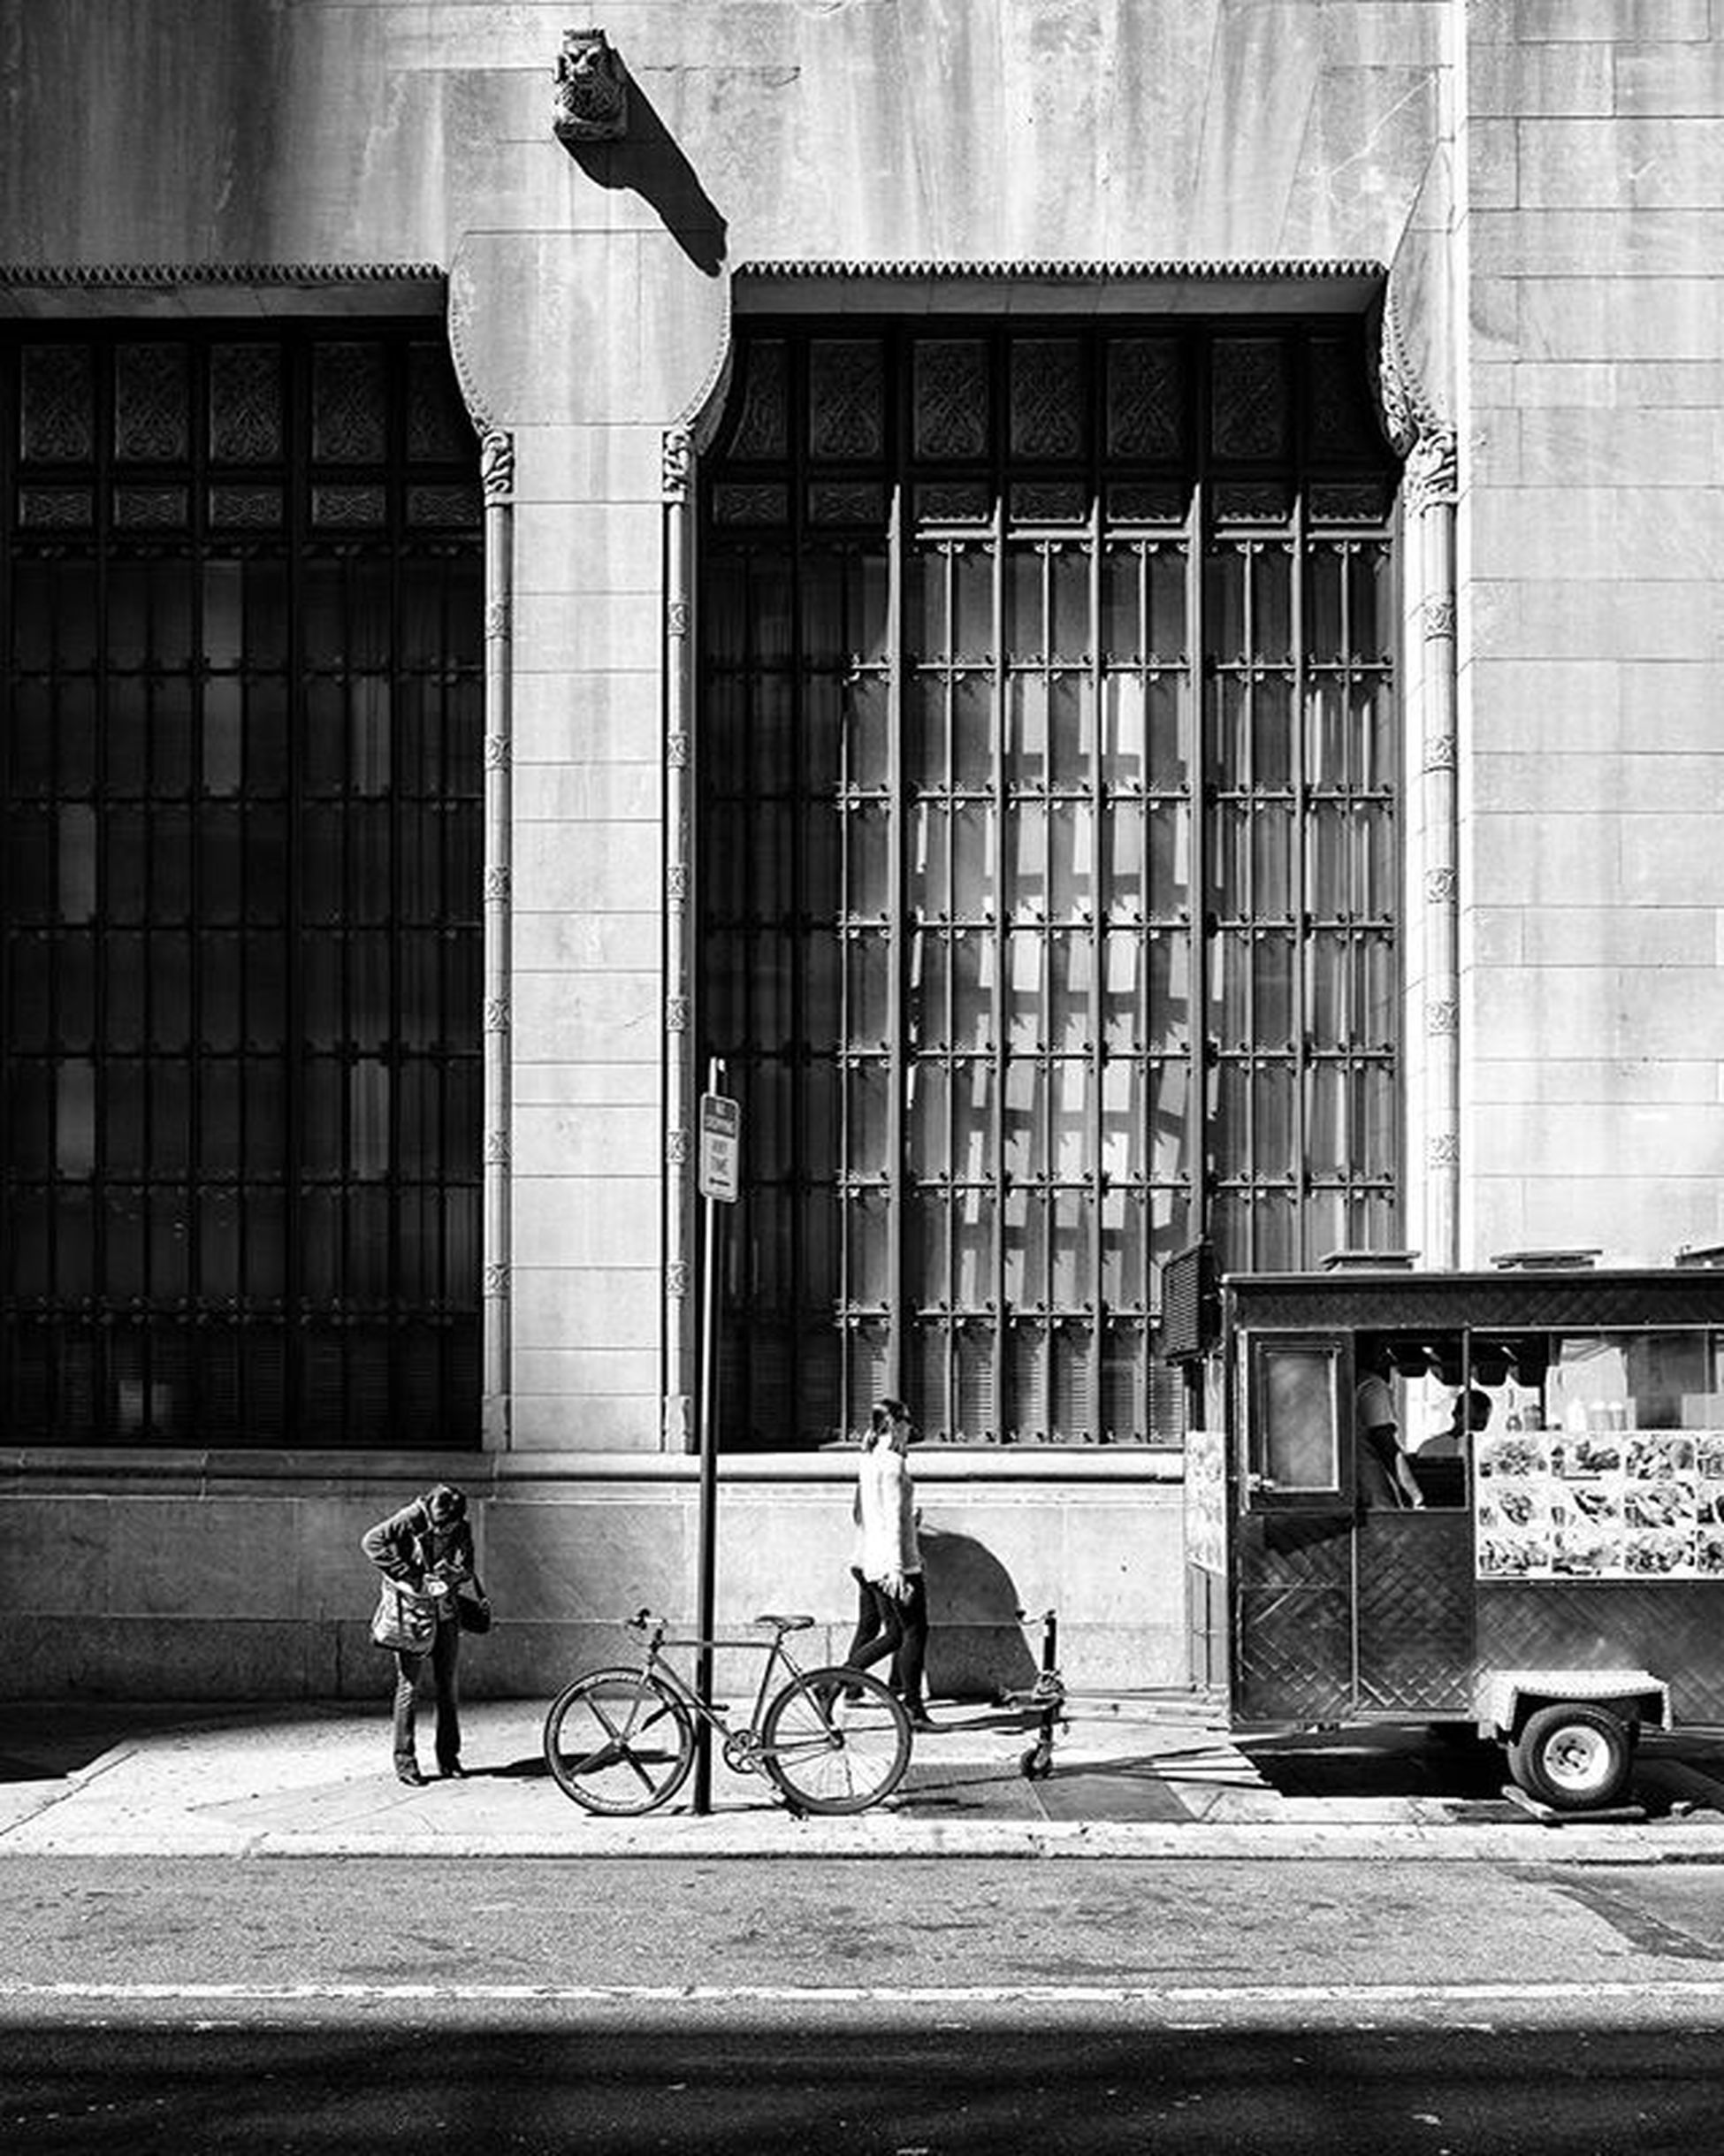 The Sunny Side of the Street Streetphotography Phillystreetphotography Architecture Phillyarchitecture Philadelphia Philly Igers_philly Igphilly Citylife Cityholderarchitecture Peopledelphia Liphillyfe Howphillyseesphilly Blackandwhite Bnw_magazine Bnw_igers Bnw_life Bnw_society Bnw Bw_philly Bw Rustlord_bnw Rustlord_archdesign Iwalkedthisstreet Bnw_madrid_september